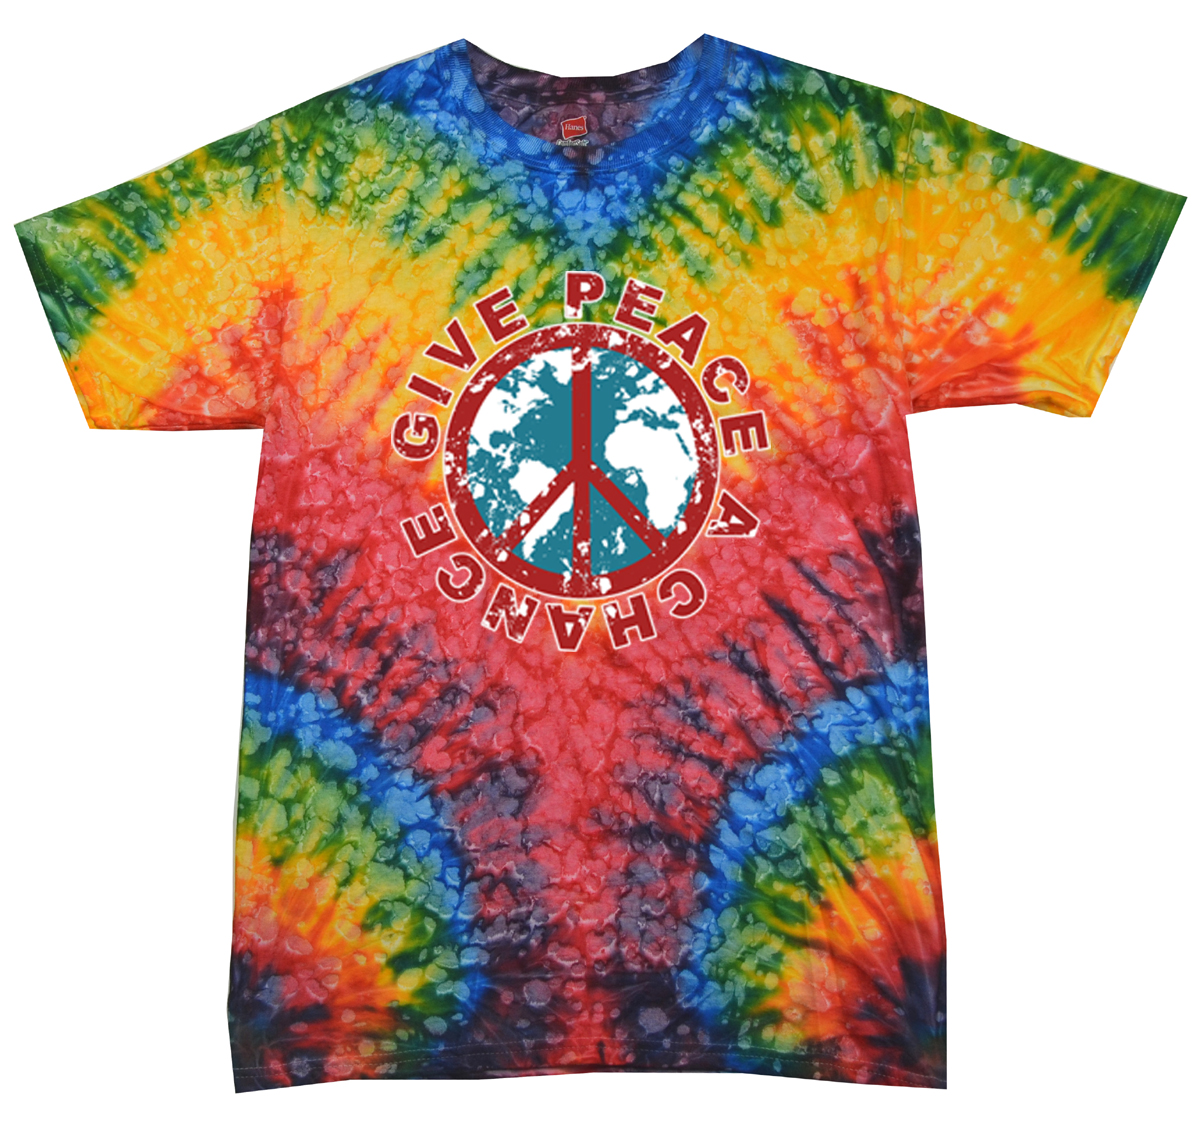 Kids peace tie dye shirt give peace a chance woodstock for Tie dye t shirt printing